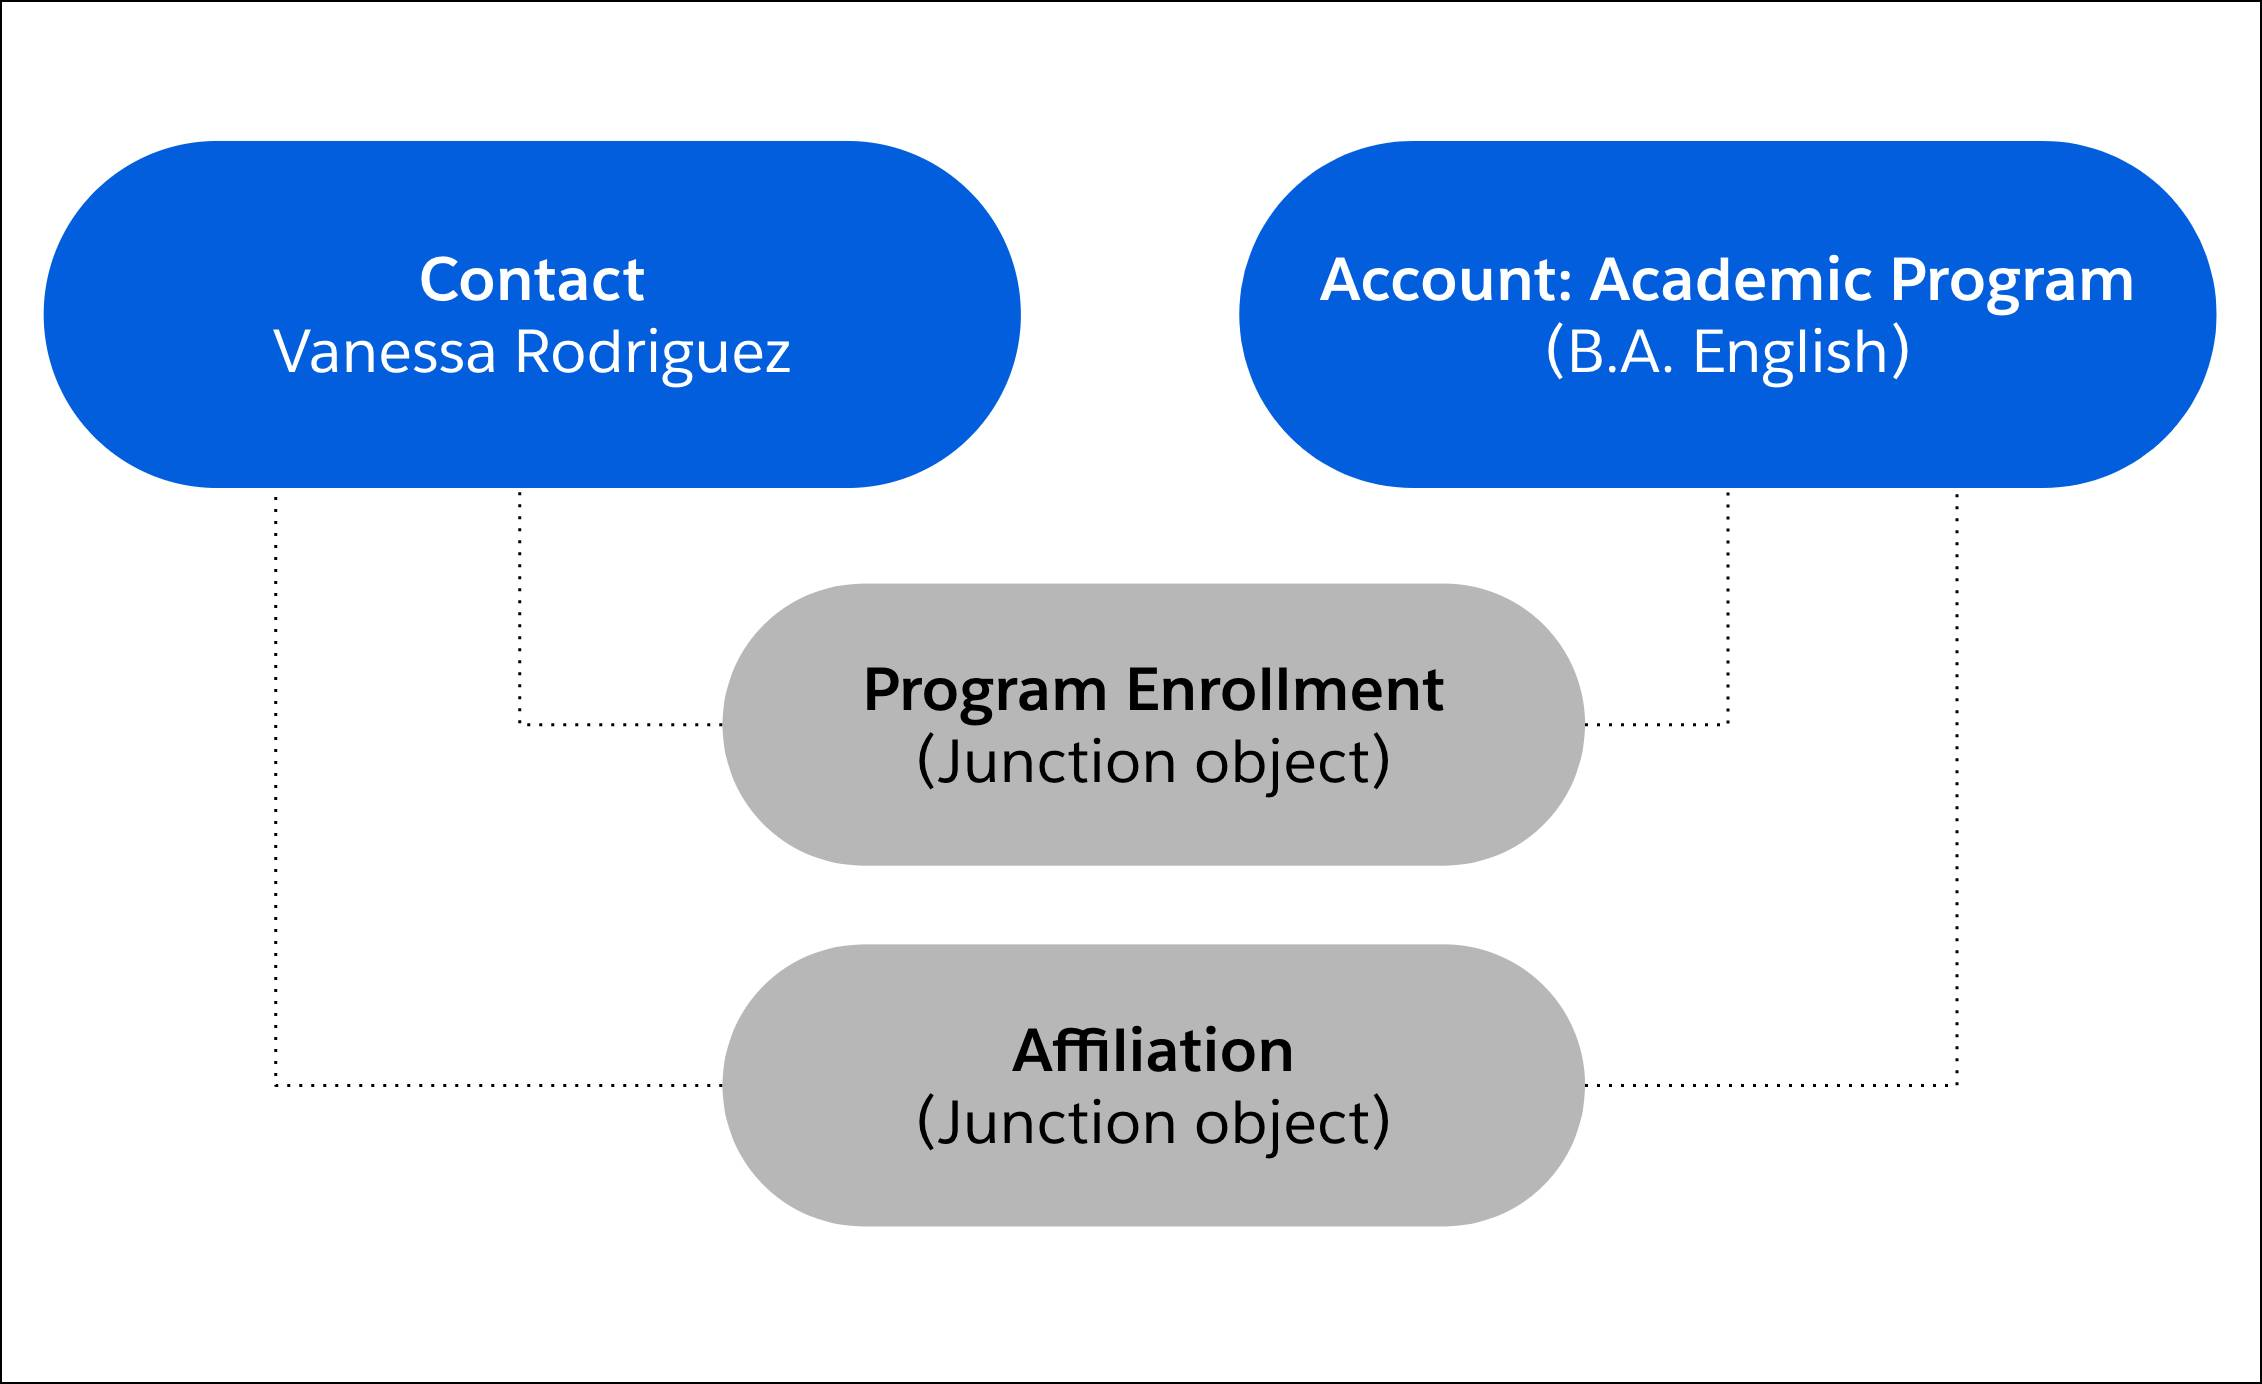 Program Enrollments connect contacts to Academic Program accounts and Affiliations represent the connection of contact records and academic program account records.